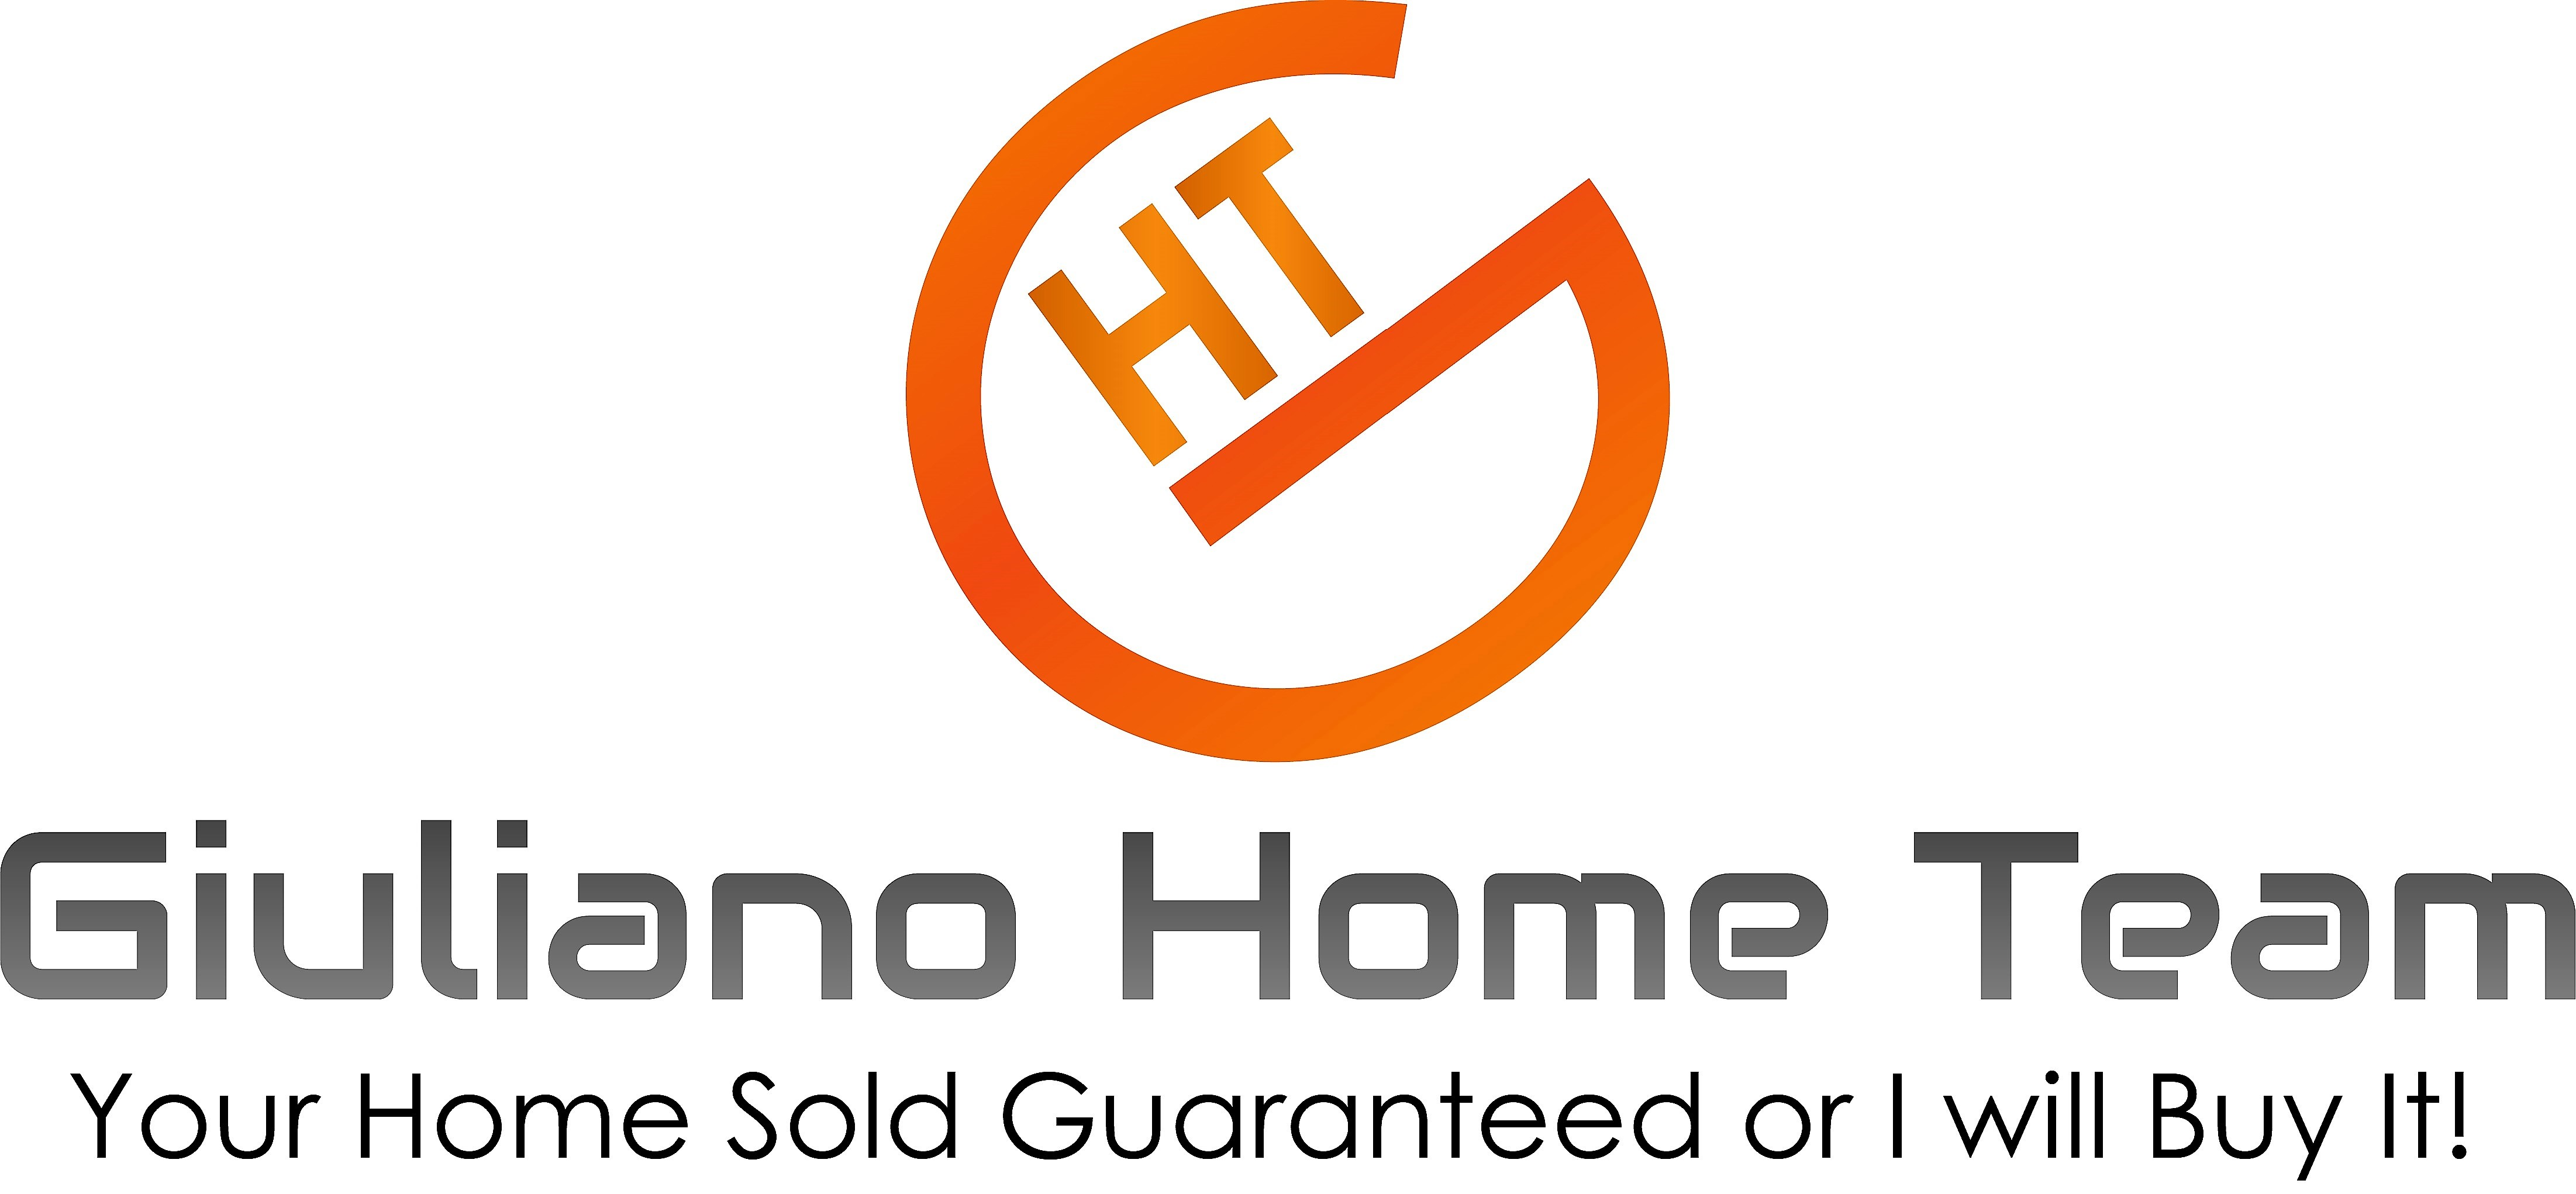 Giuliano Home Team Powered by Elevate Real Estate Brokers of Florida logo